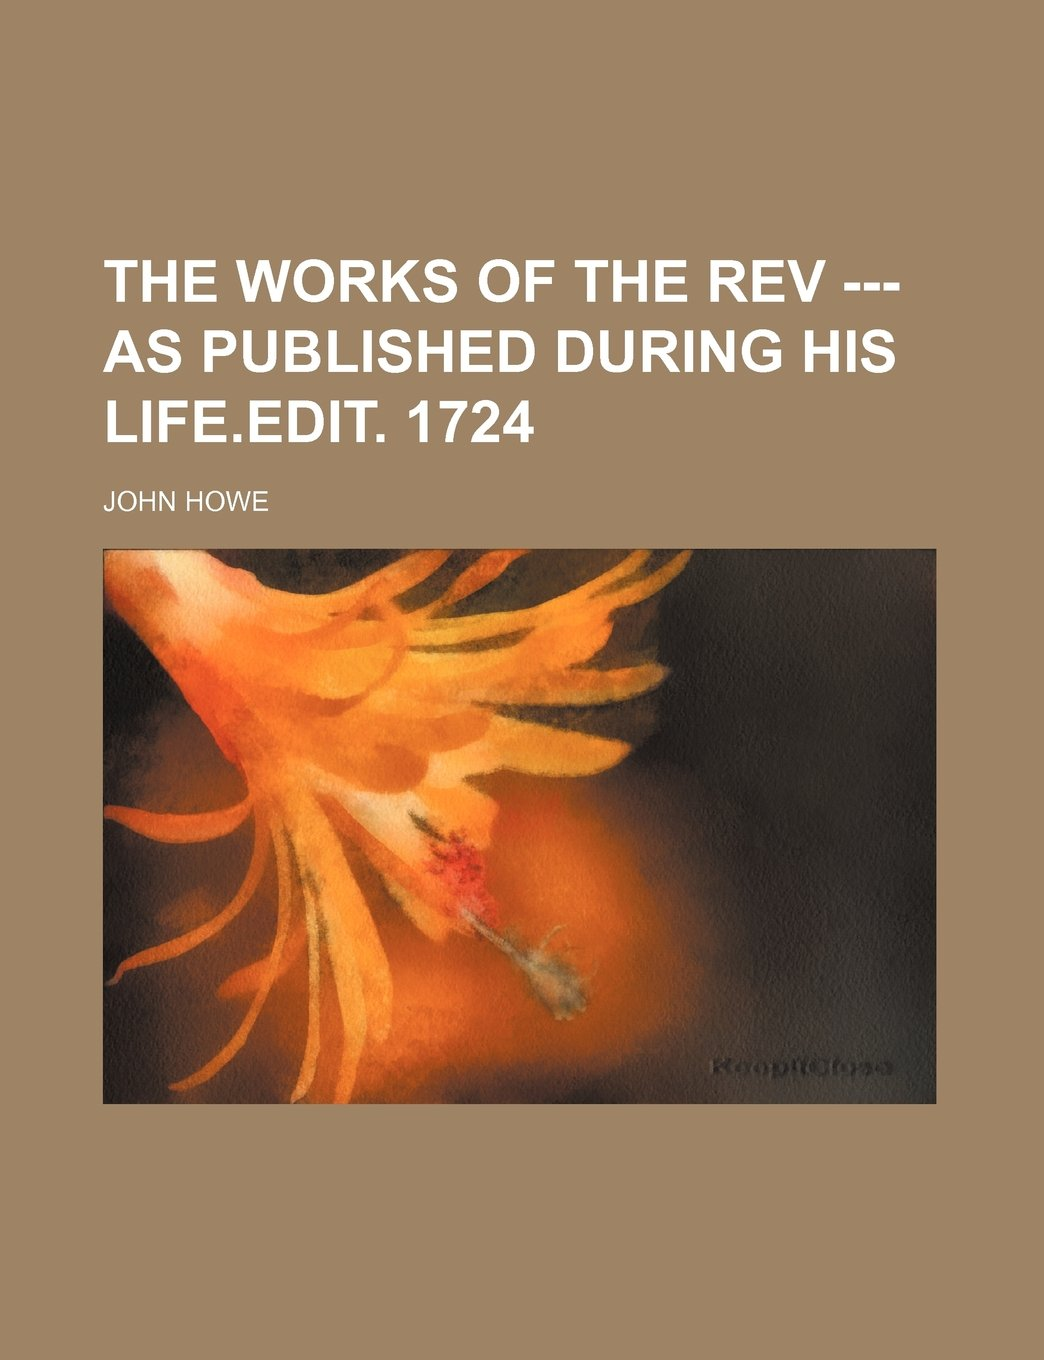 The Works of the Rev --- as published during his life.edit. 1724 pdf epub